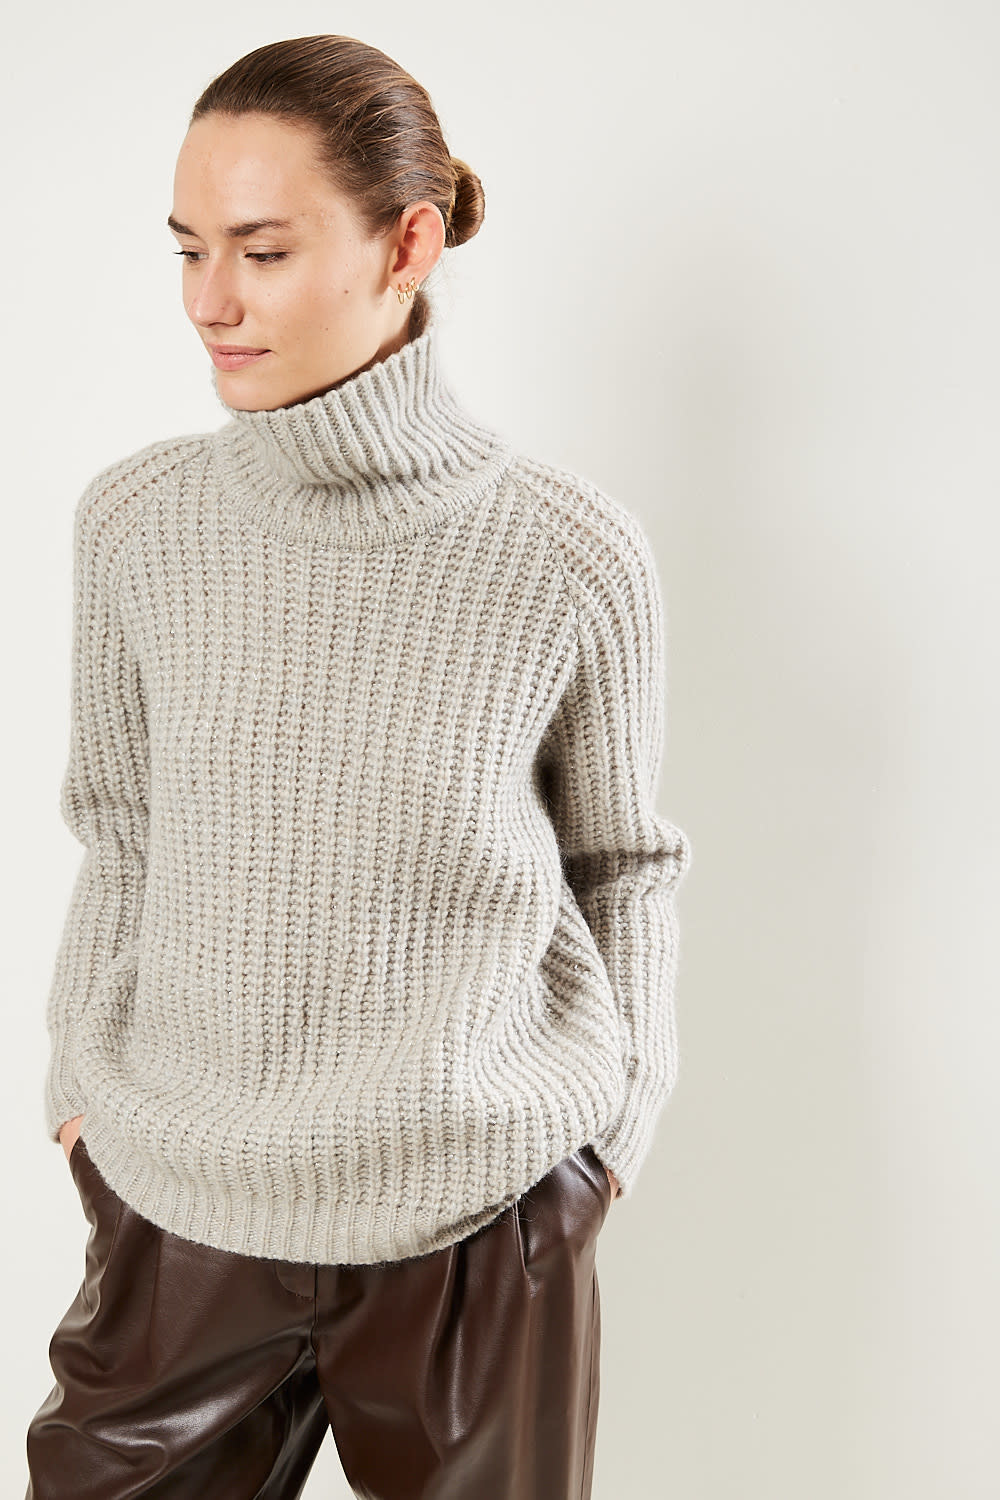 inDRESS Oversized high neck sweater